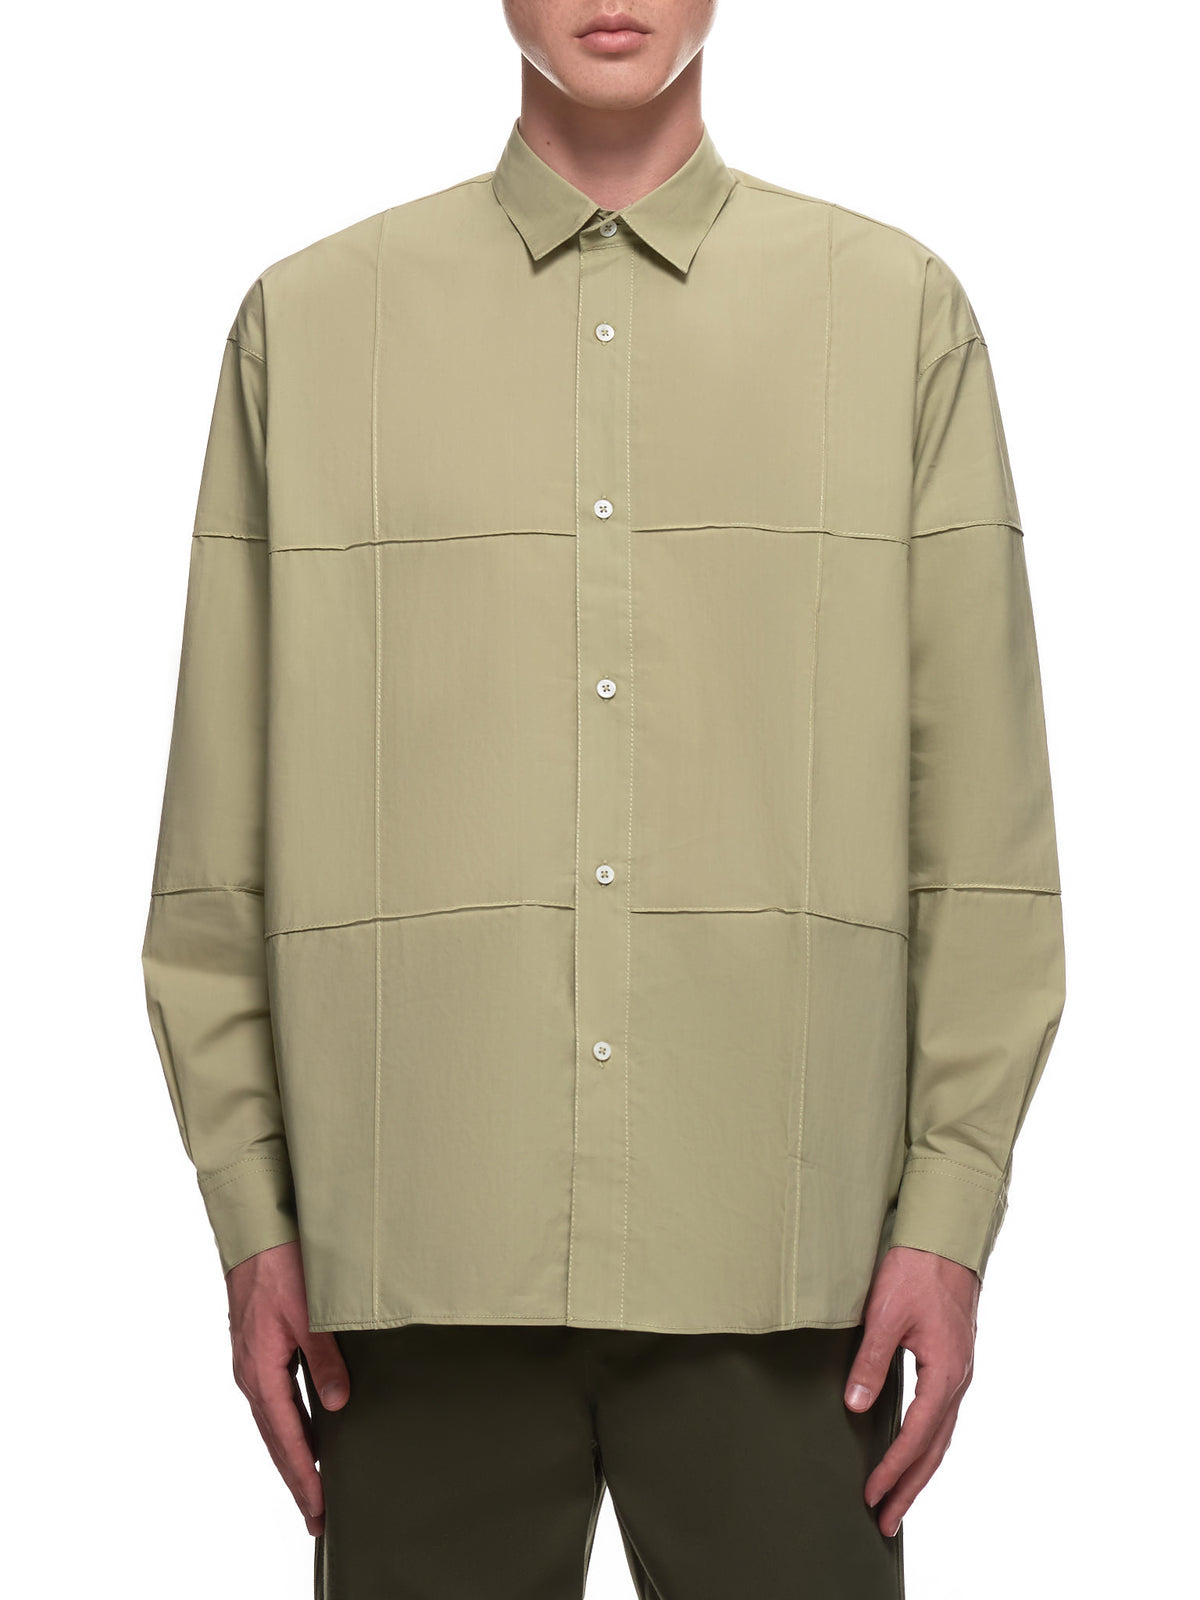 Window Pane Check Shirt (206SH13-122530-LIGHT-KHAKI)